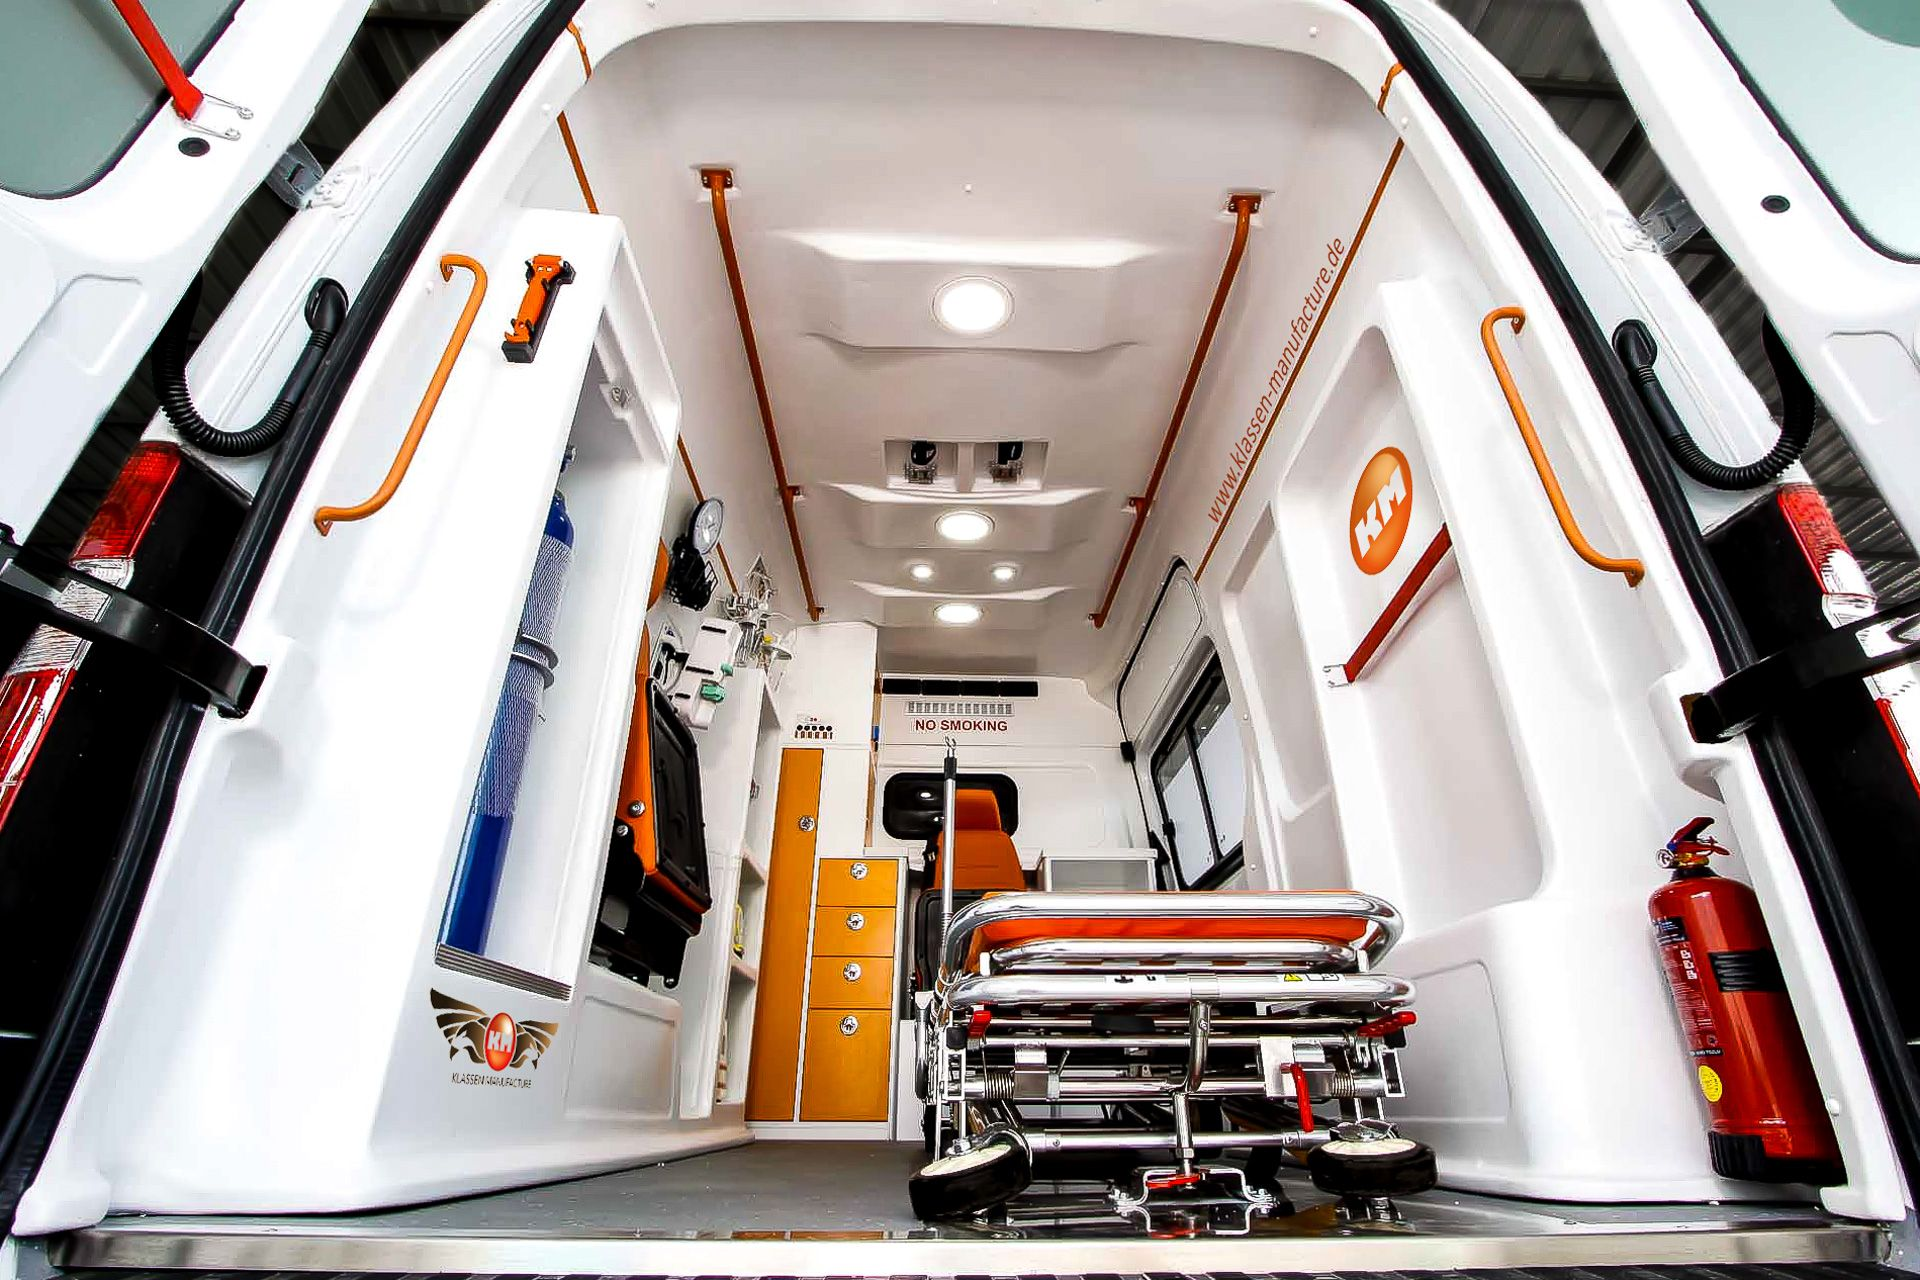 Our New Mercedes Benz Sprinter Ambulance Rescue Vehicle